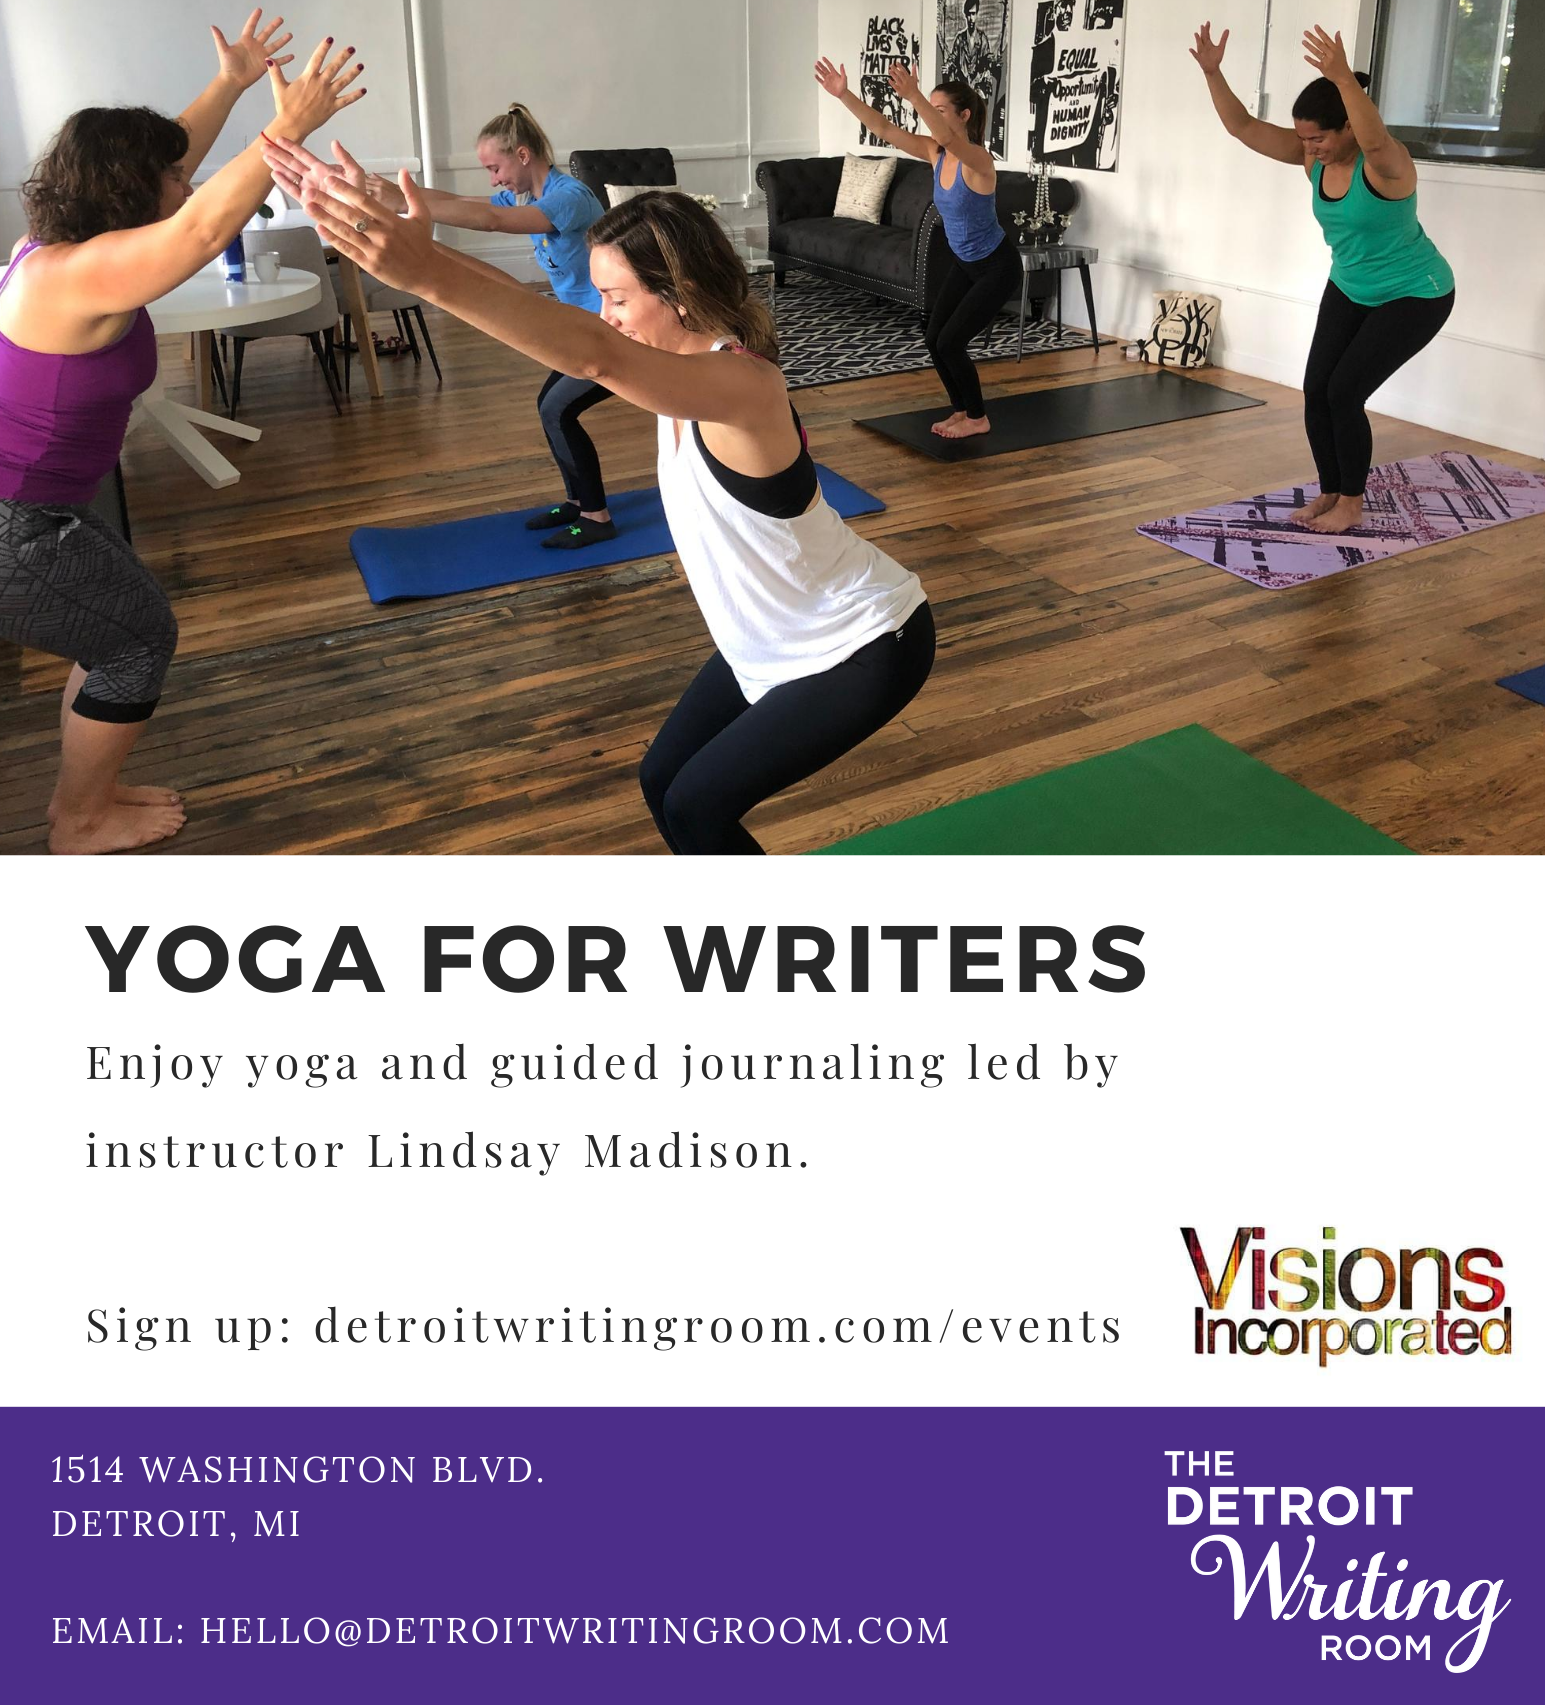 Yoga-for-Writers-Ad